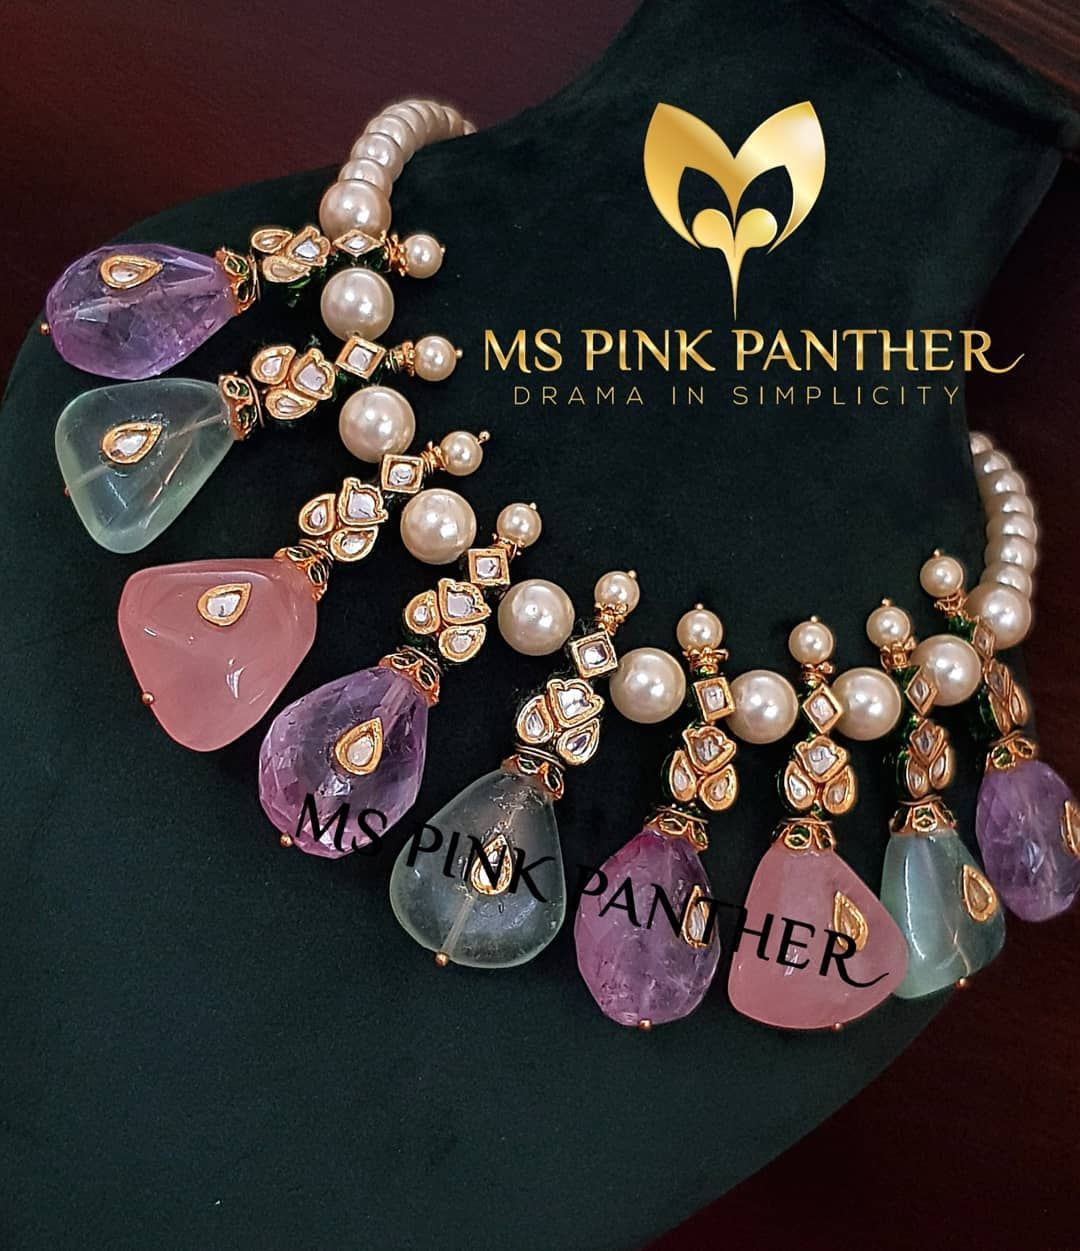 Glamorous Necklace From Ms Pink Panthers